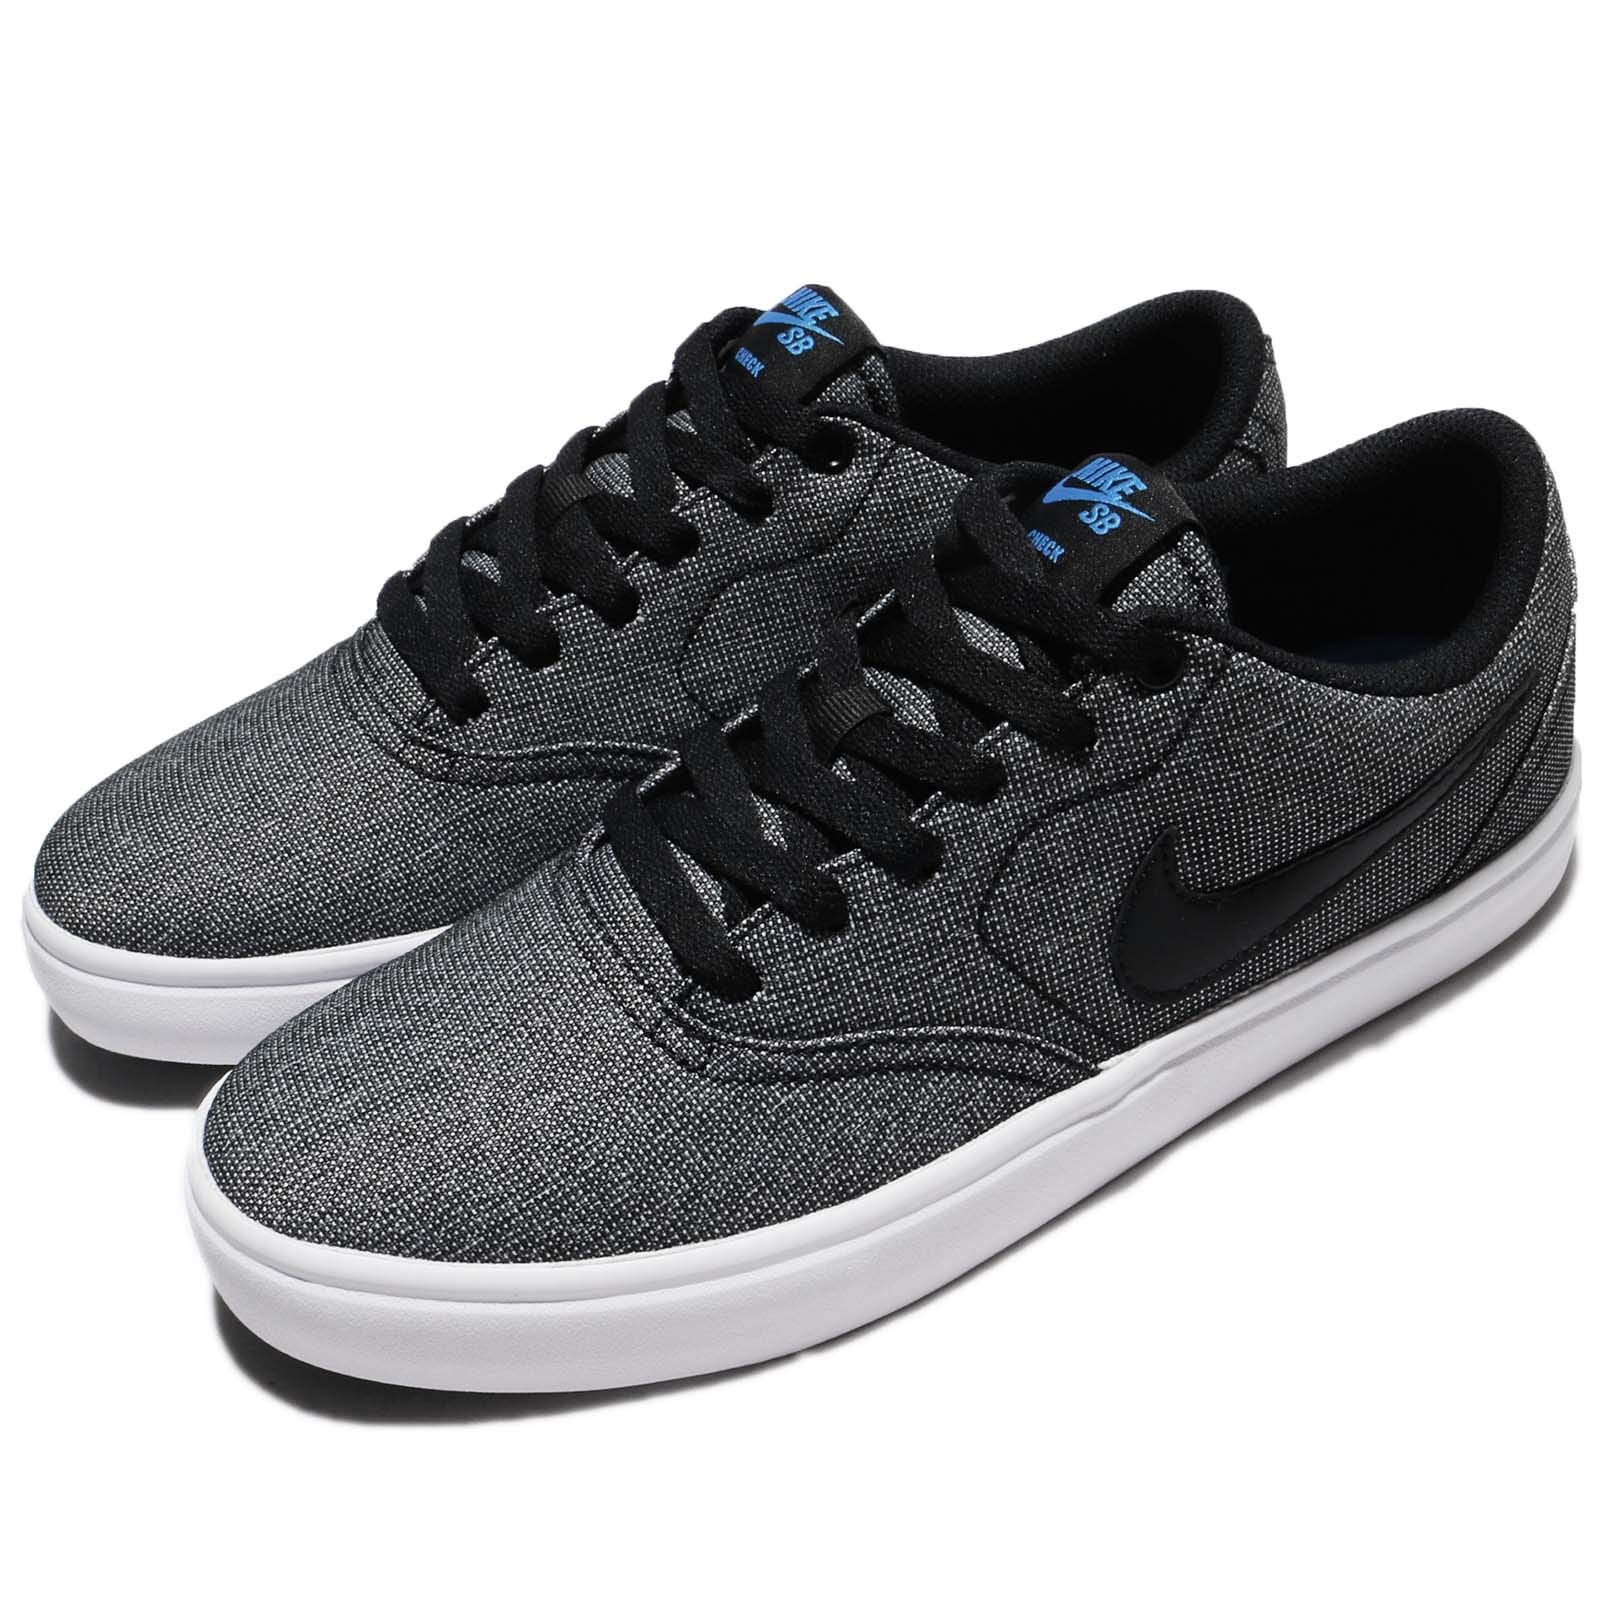 Nike Mens Check Solar Solar Sole Skateboarding Shoes Black 4.5 Medium (D) by Nike (Image #8)